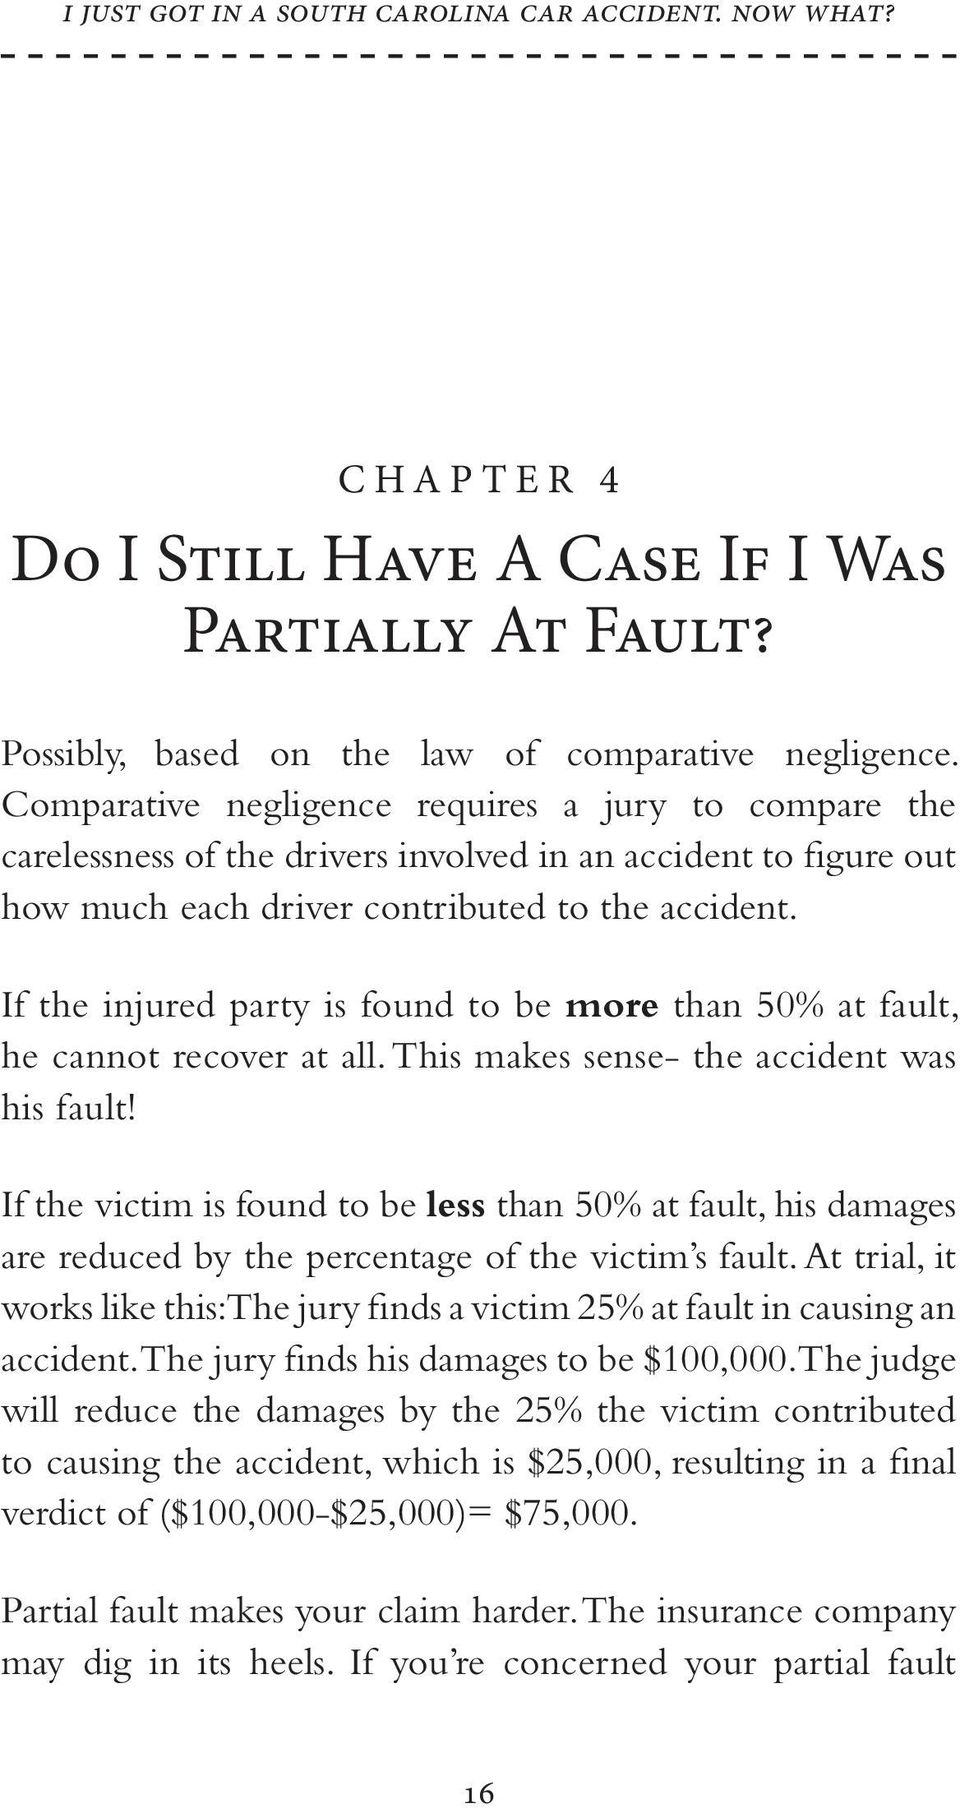 If the injured party is found to be more than 50% at fault, he cannot recover at all. This makes sense- the accident was his fault!